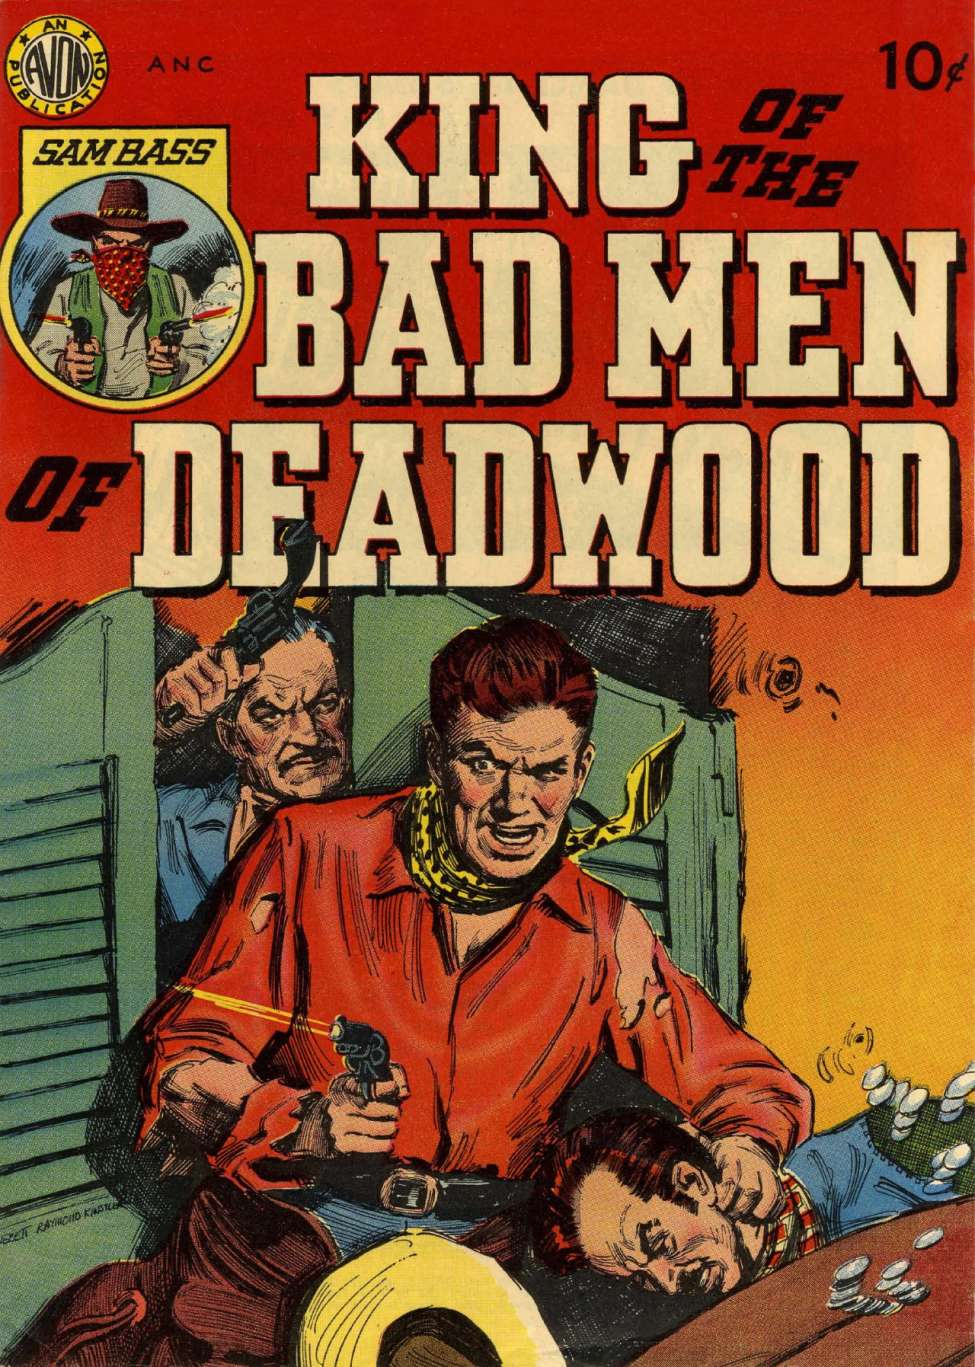 Comic Book Cover For King of the Bad Men of Deadwood [nn] - Version 2